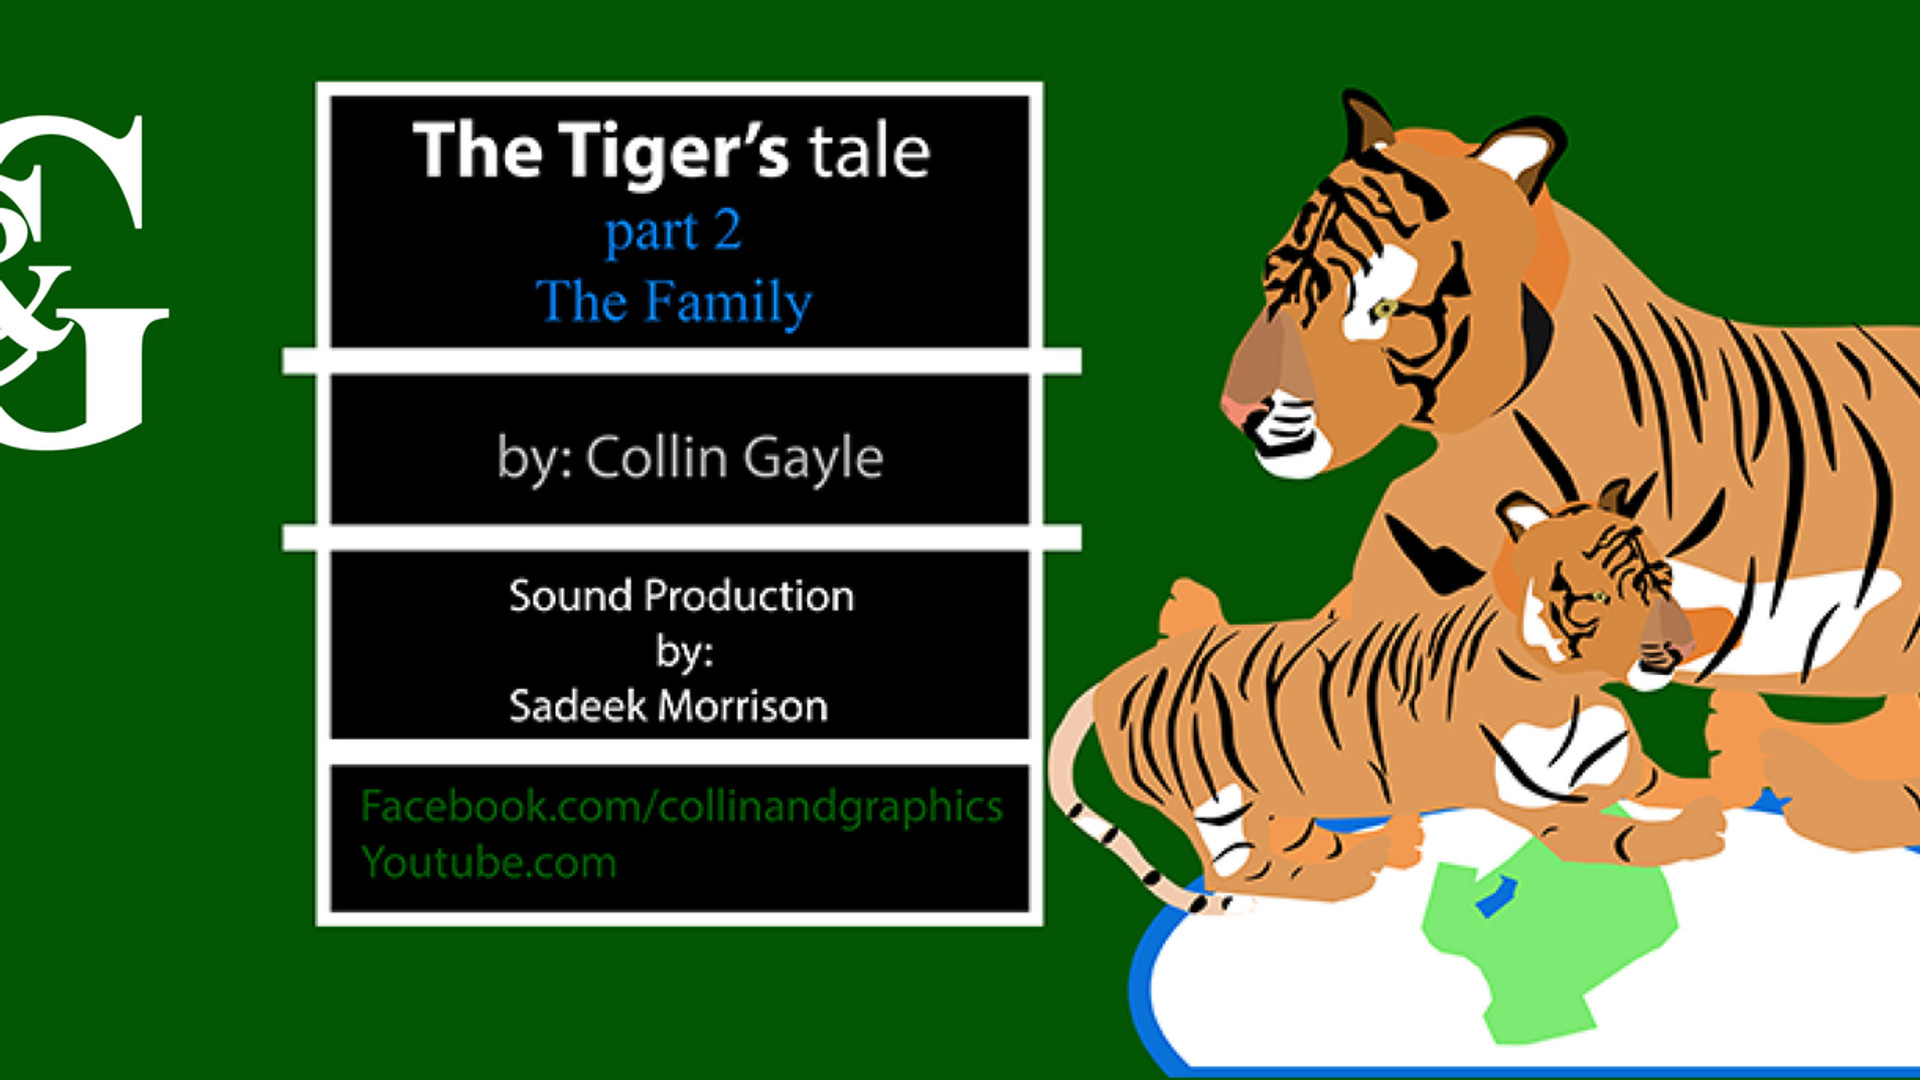 The Tiger tale Part 2